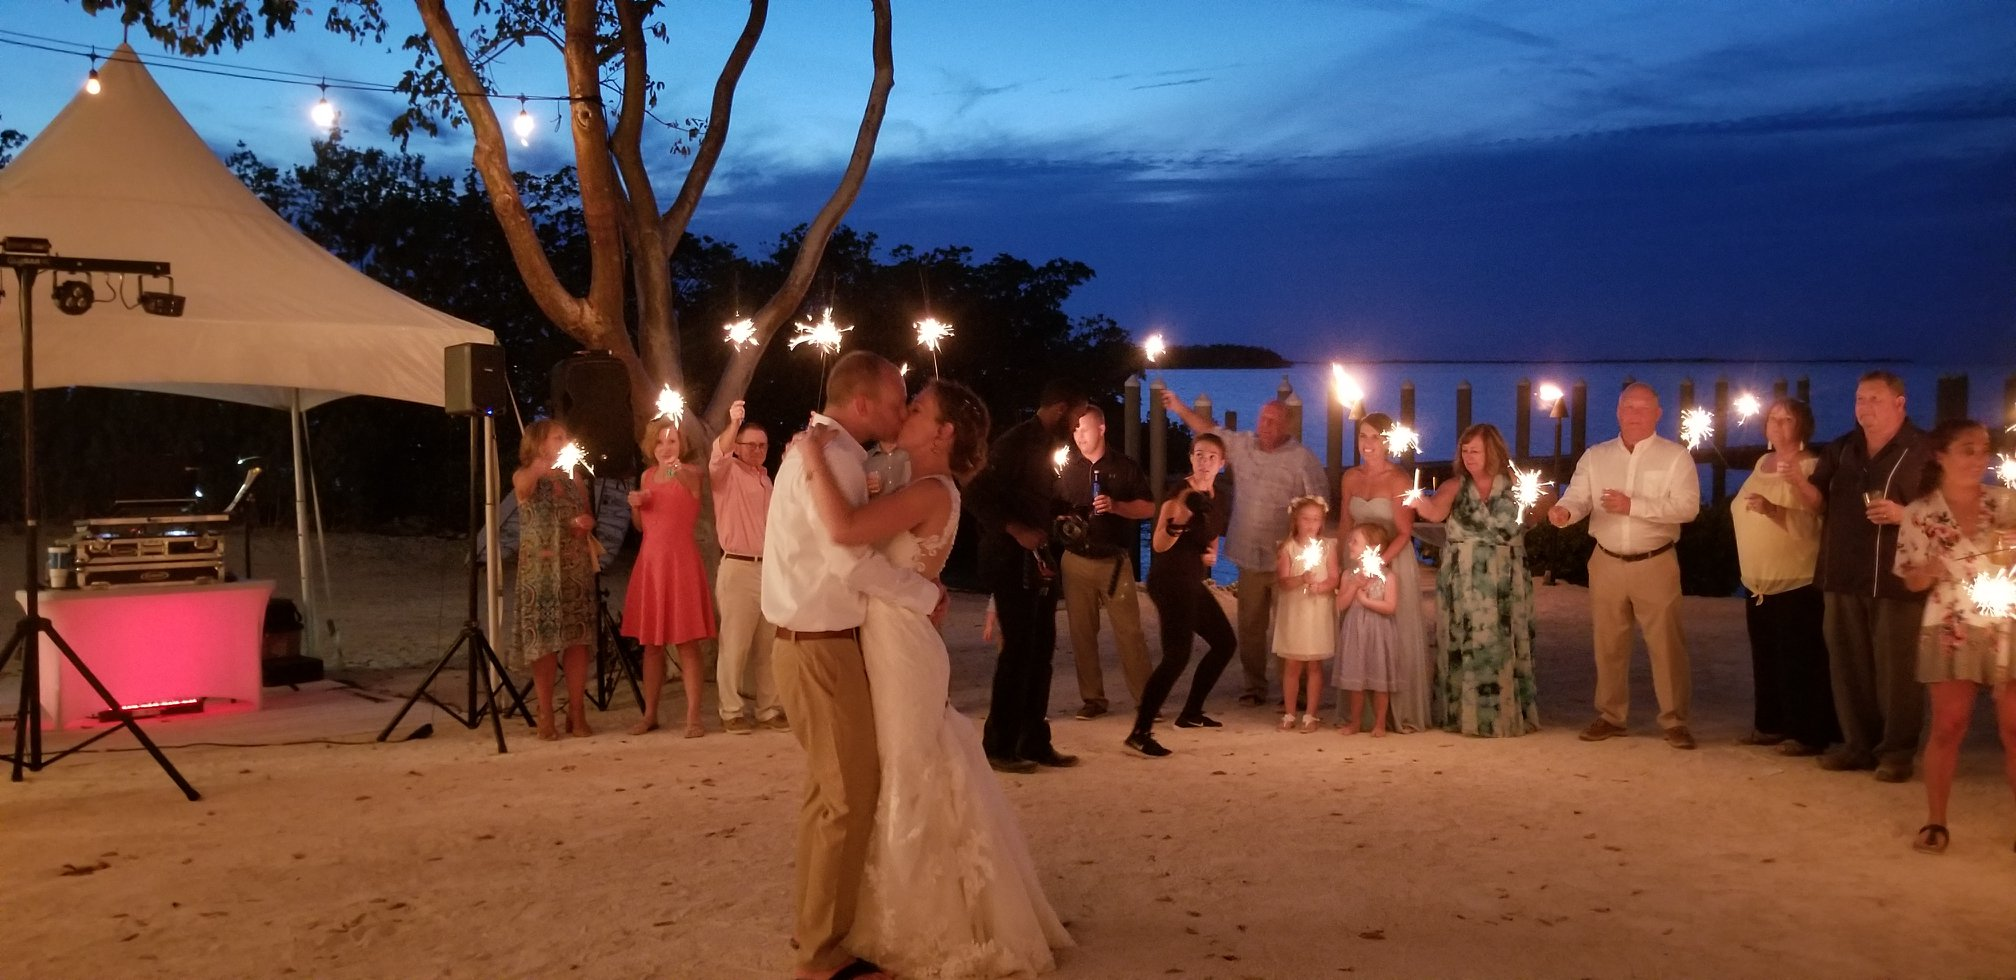 Wedding DJ in Ft. Meyers, Naples, Miaimi, Ft. Lauderdale and the Florida Keys